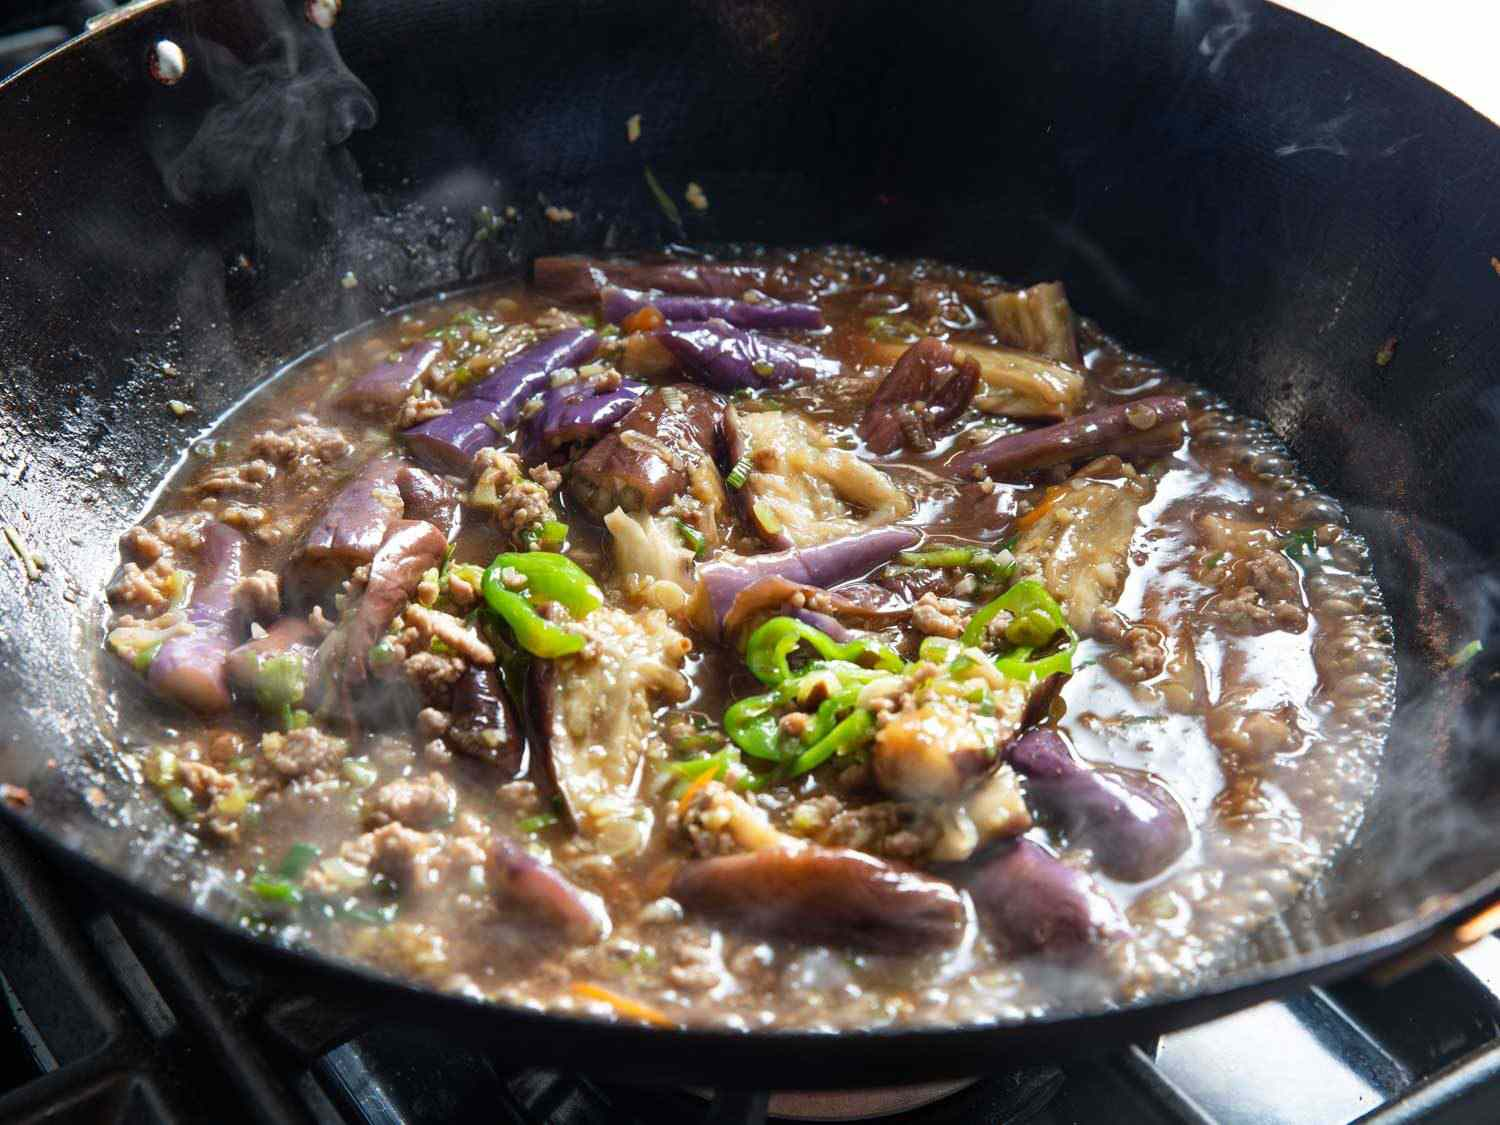 Sichuan eggplant simmering in a wok